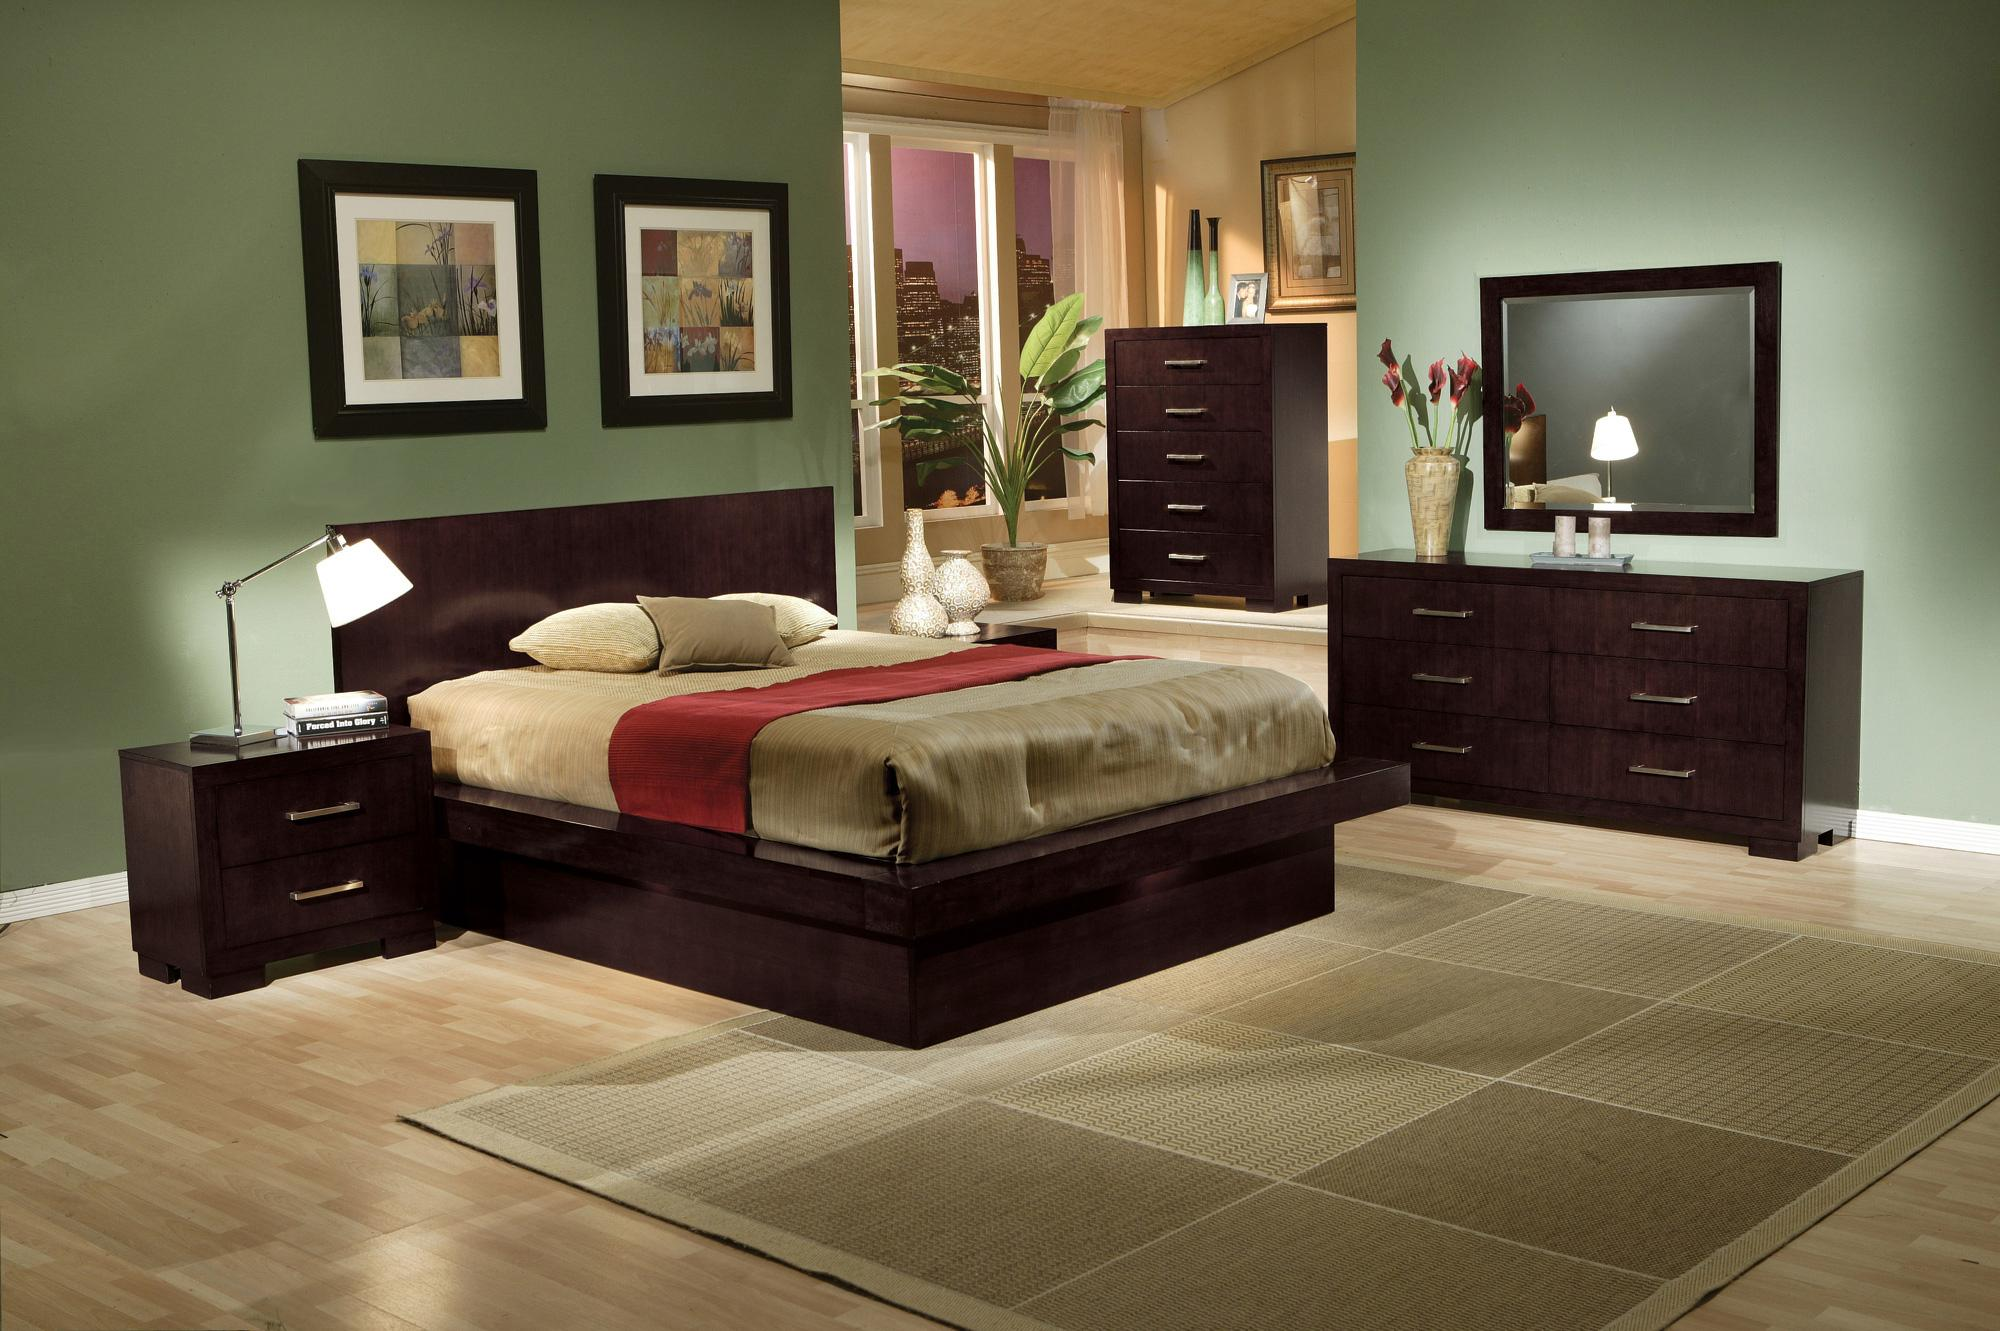 Coaster Jessica King Contemporary Bed With Storage Headboard And Built In  Lighting   Coaster Fine Furniture